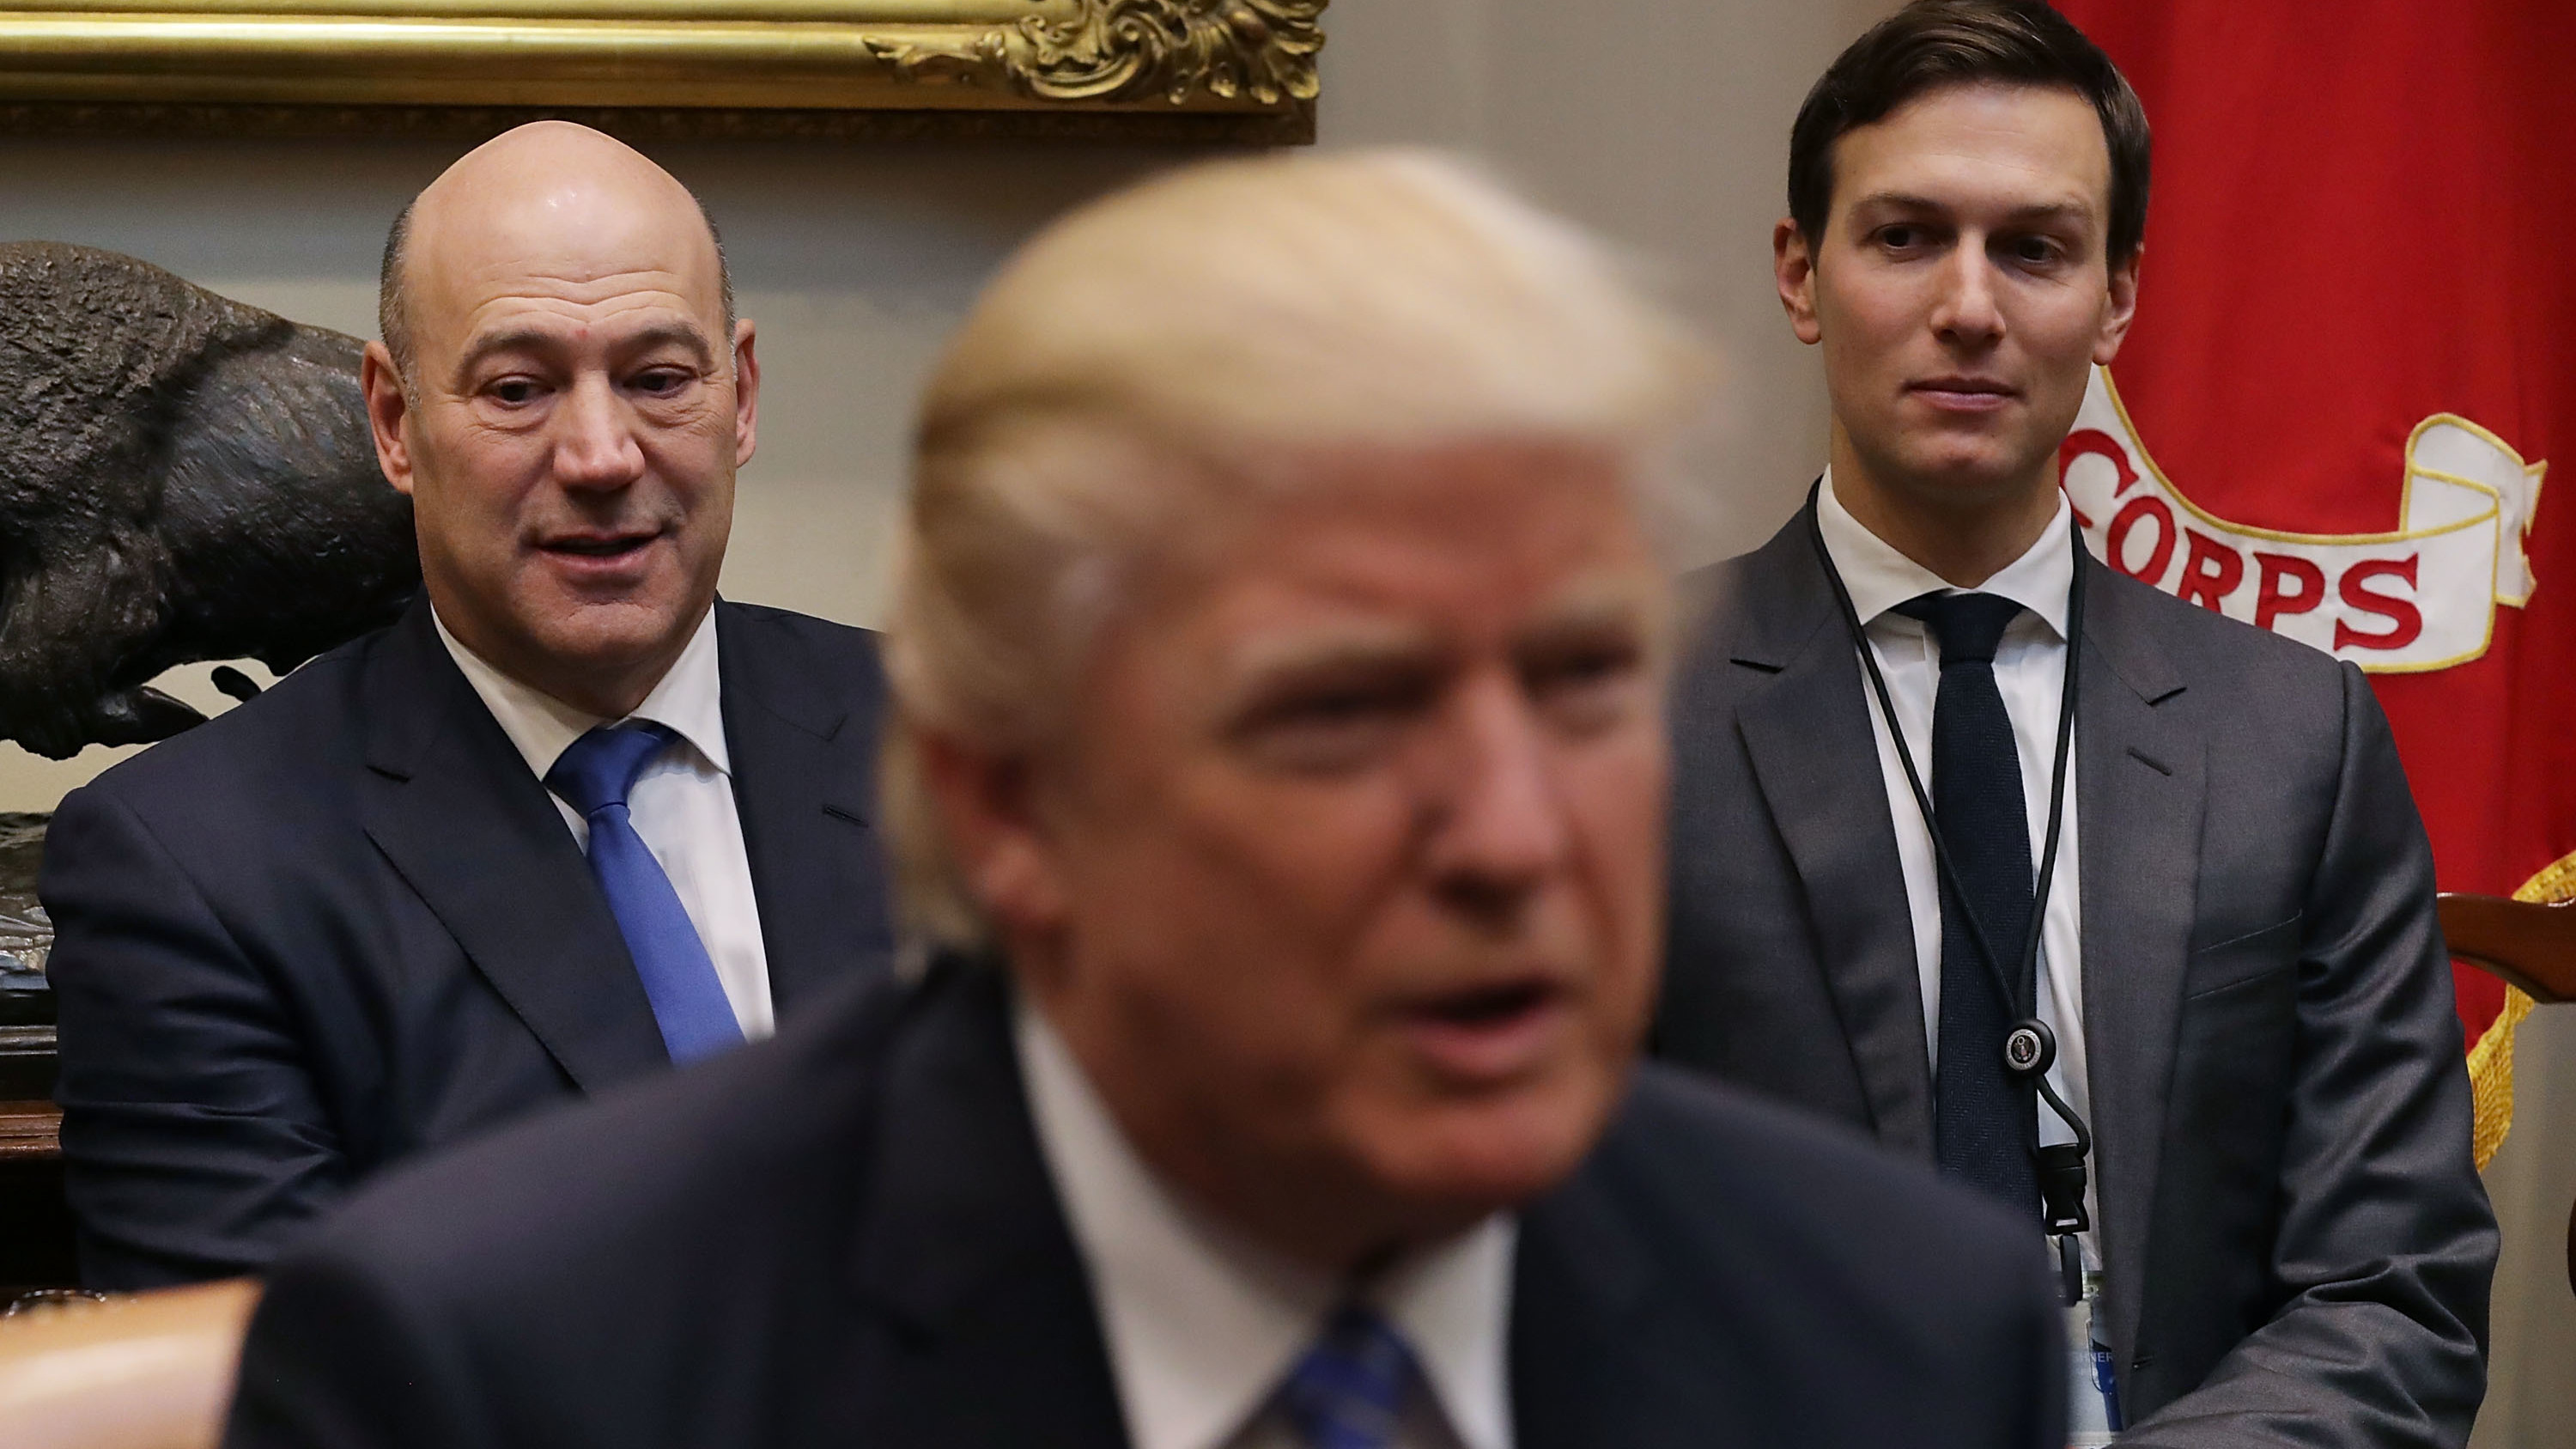 Trump's economic adviser Gary Cohn and adviser Jared Kushner listen to President Trump at a meeting with business leaders Jan. 23